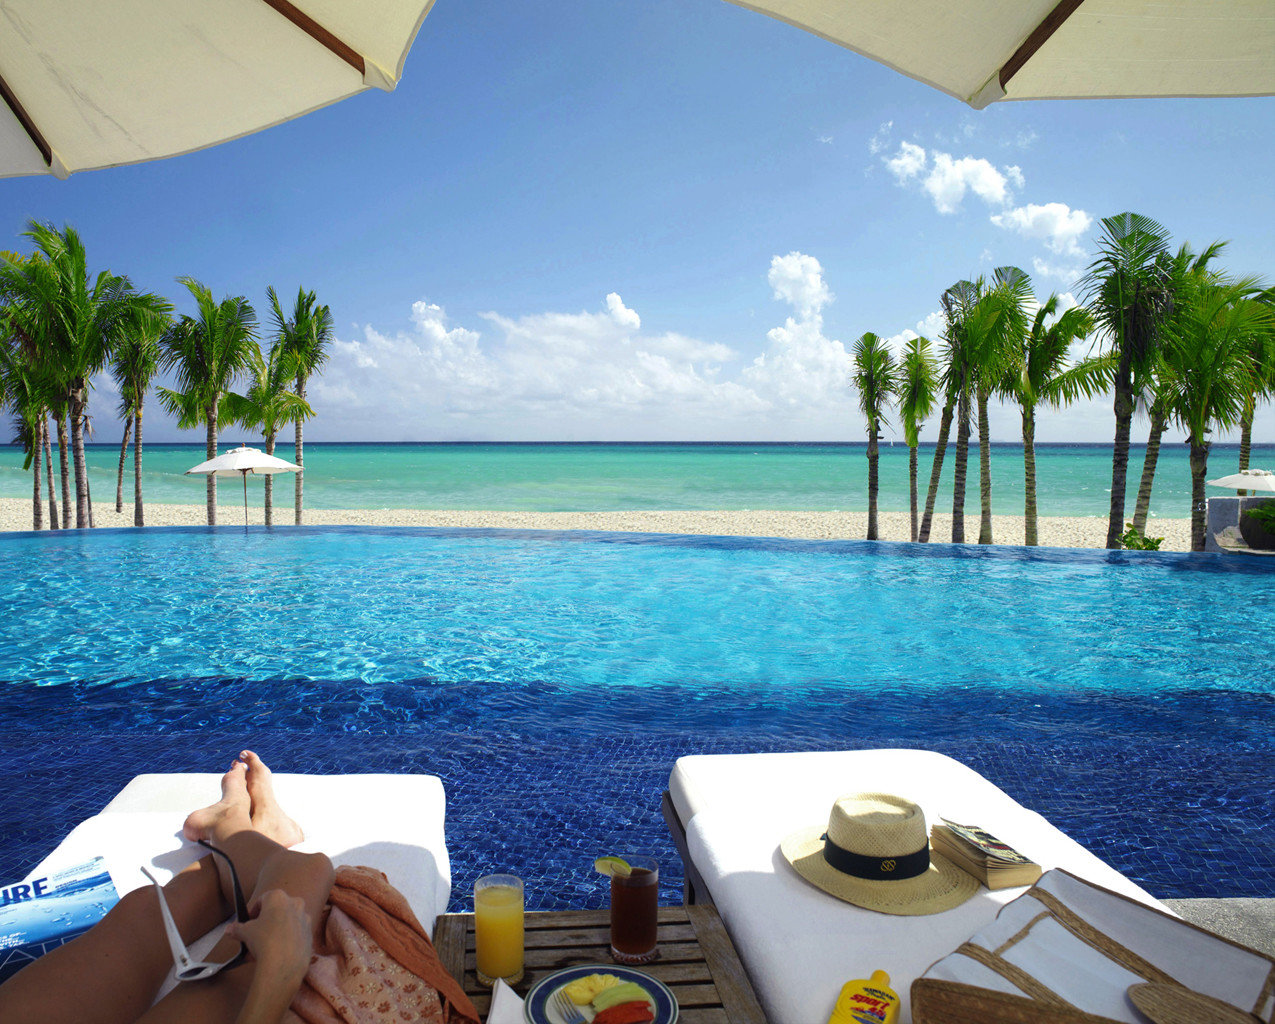 All-Inclusive Resorts Beachfront Hotels Living Lounge Luxury Travel Ocean Pool Romance Trip Ideas Tropical water sky table leisure outdoor caribbean vacation swimming pool Sea Resort Beach Lagoon bay estate Deck Island Villa cape shore